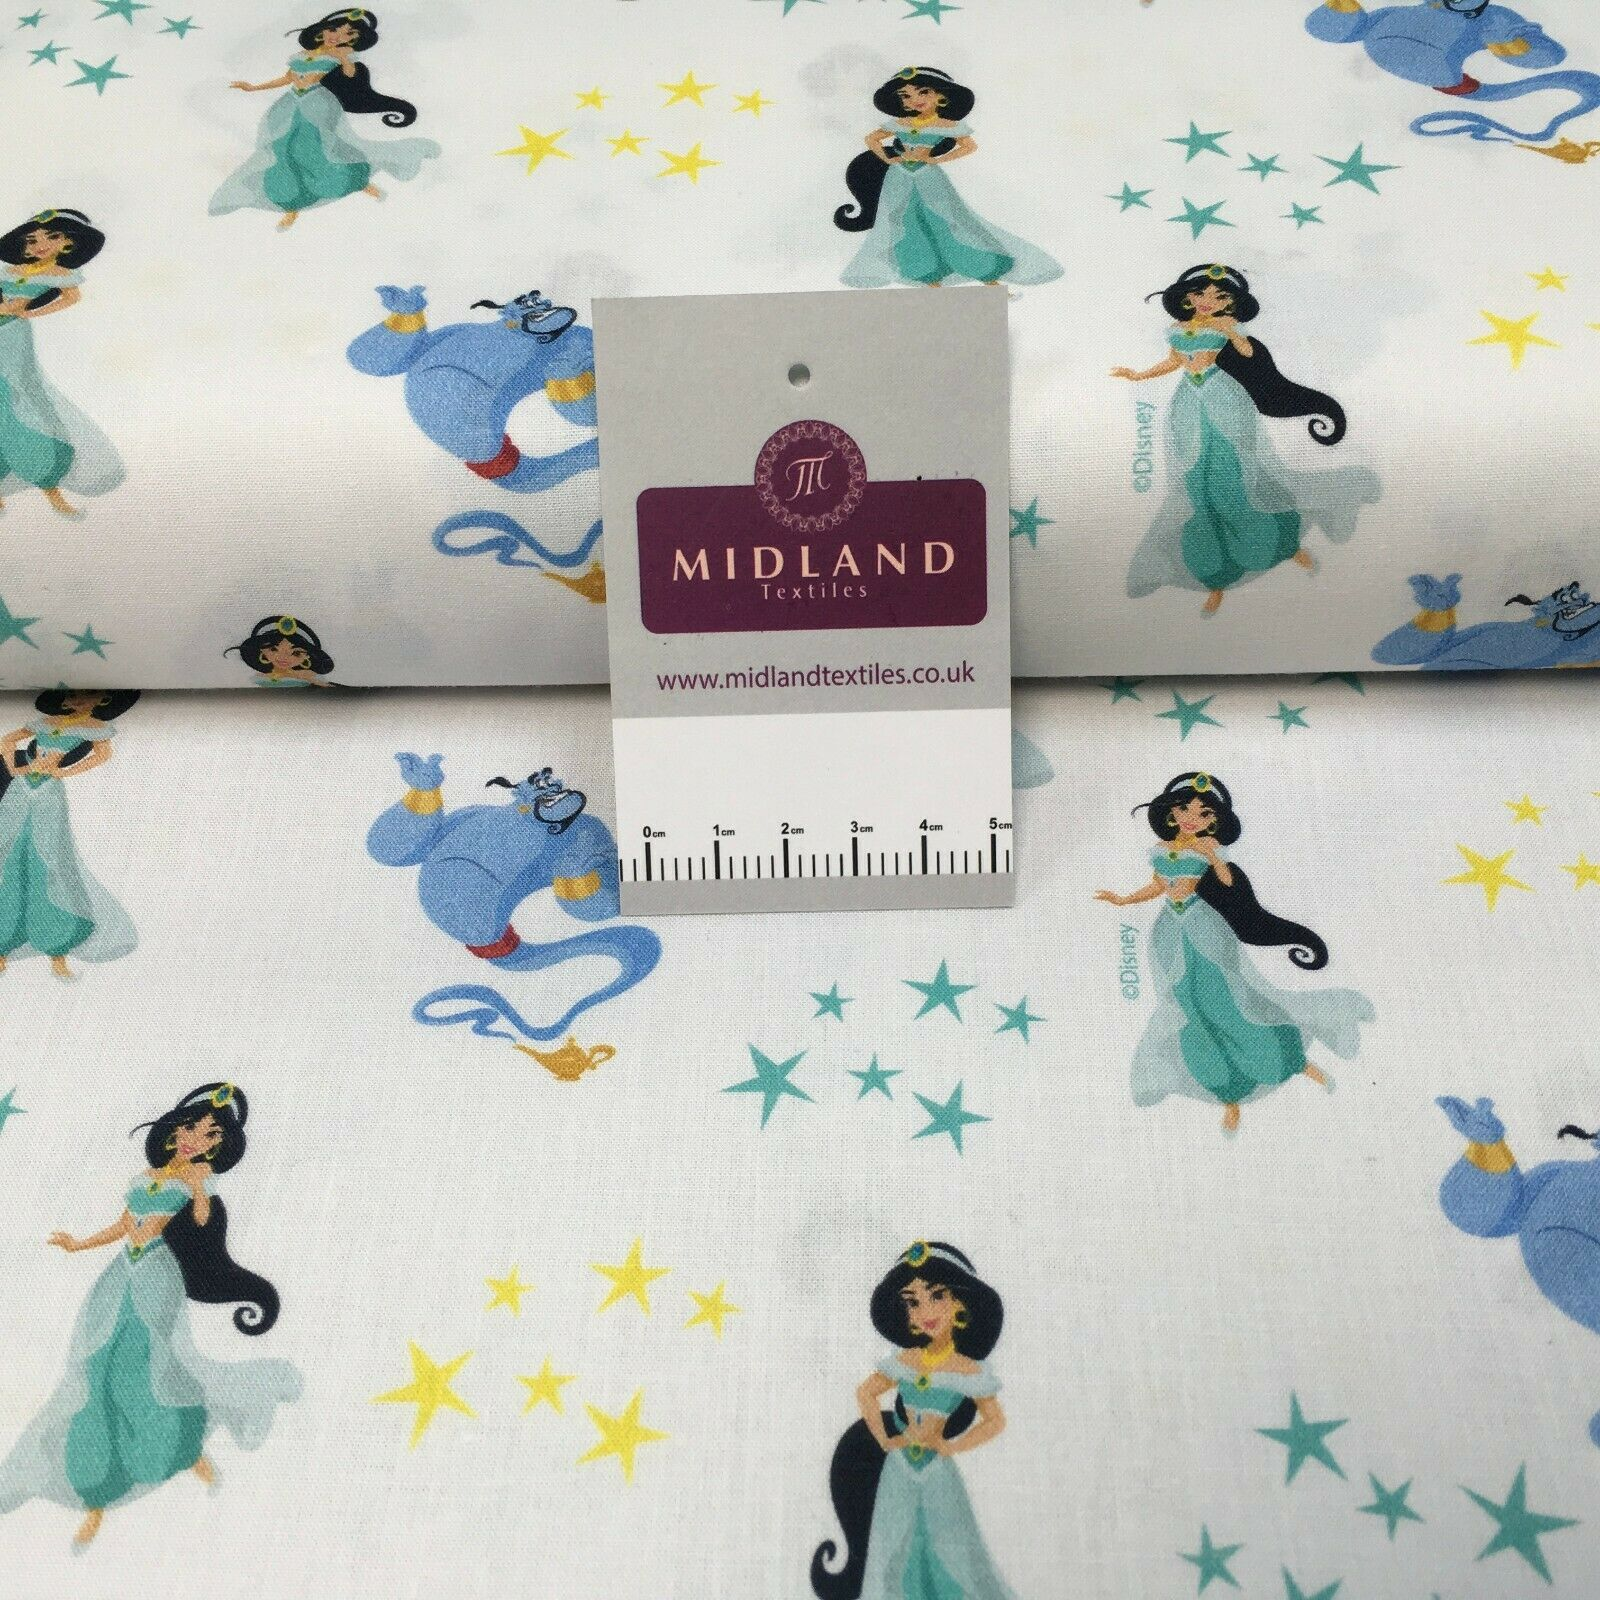 White Licensed Digital Printed Aladdin 100% Cotton Fabric MH1452 Mtex